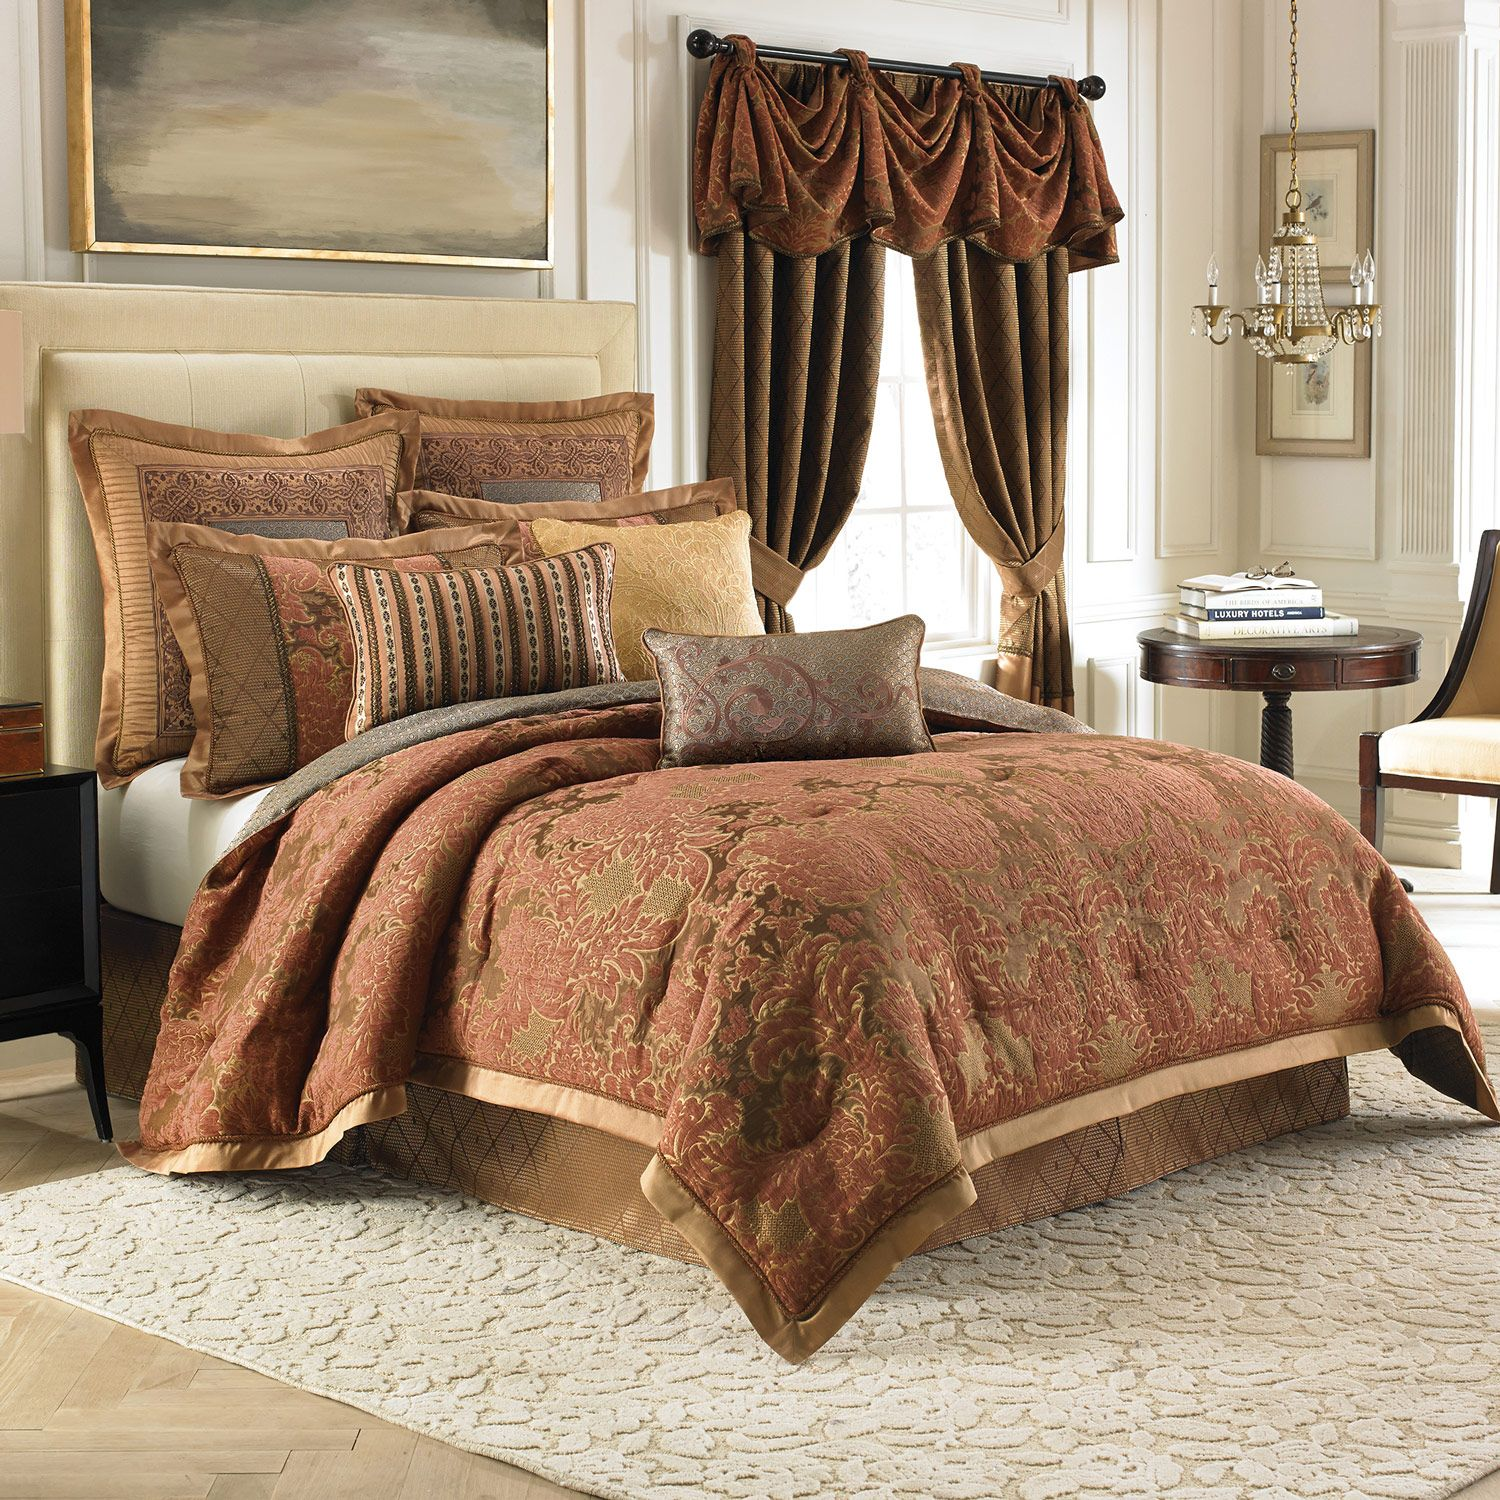 luxury golden bedding sets king with rug and curtain